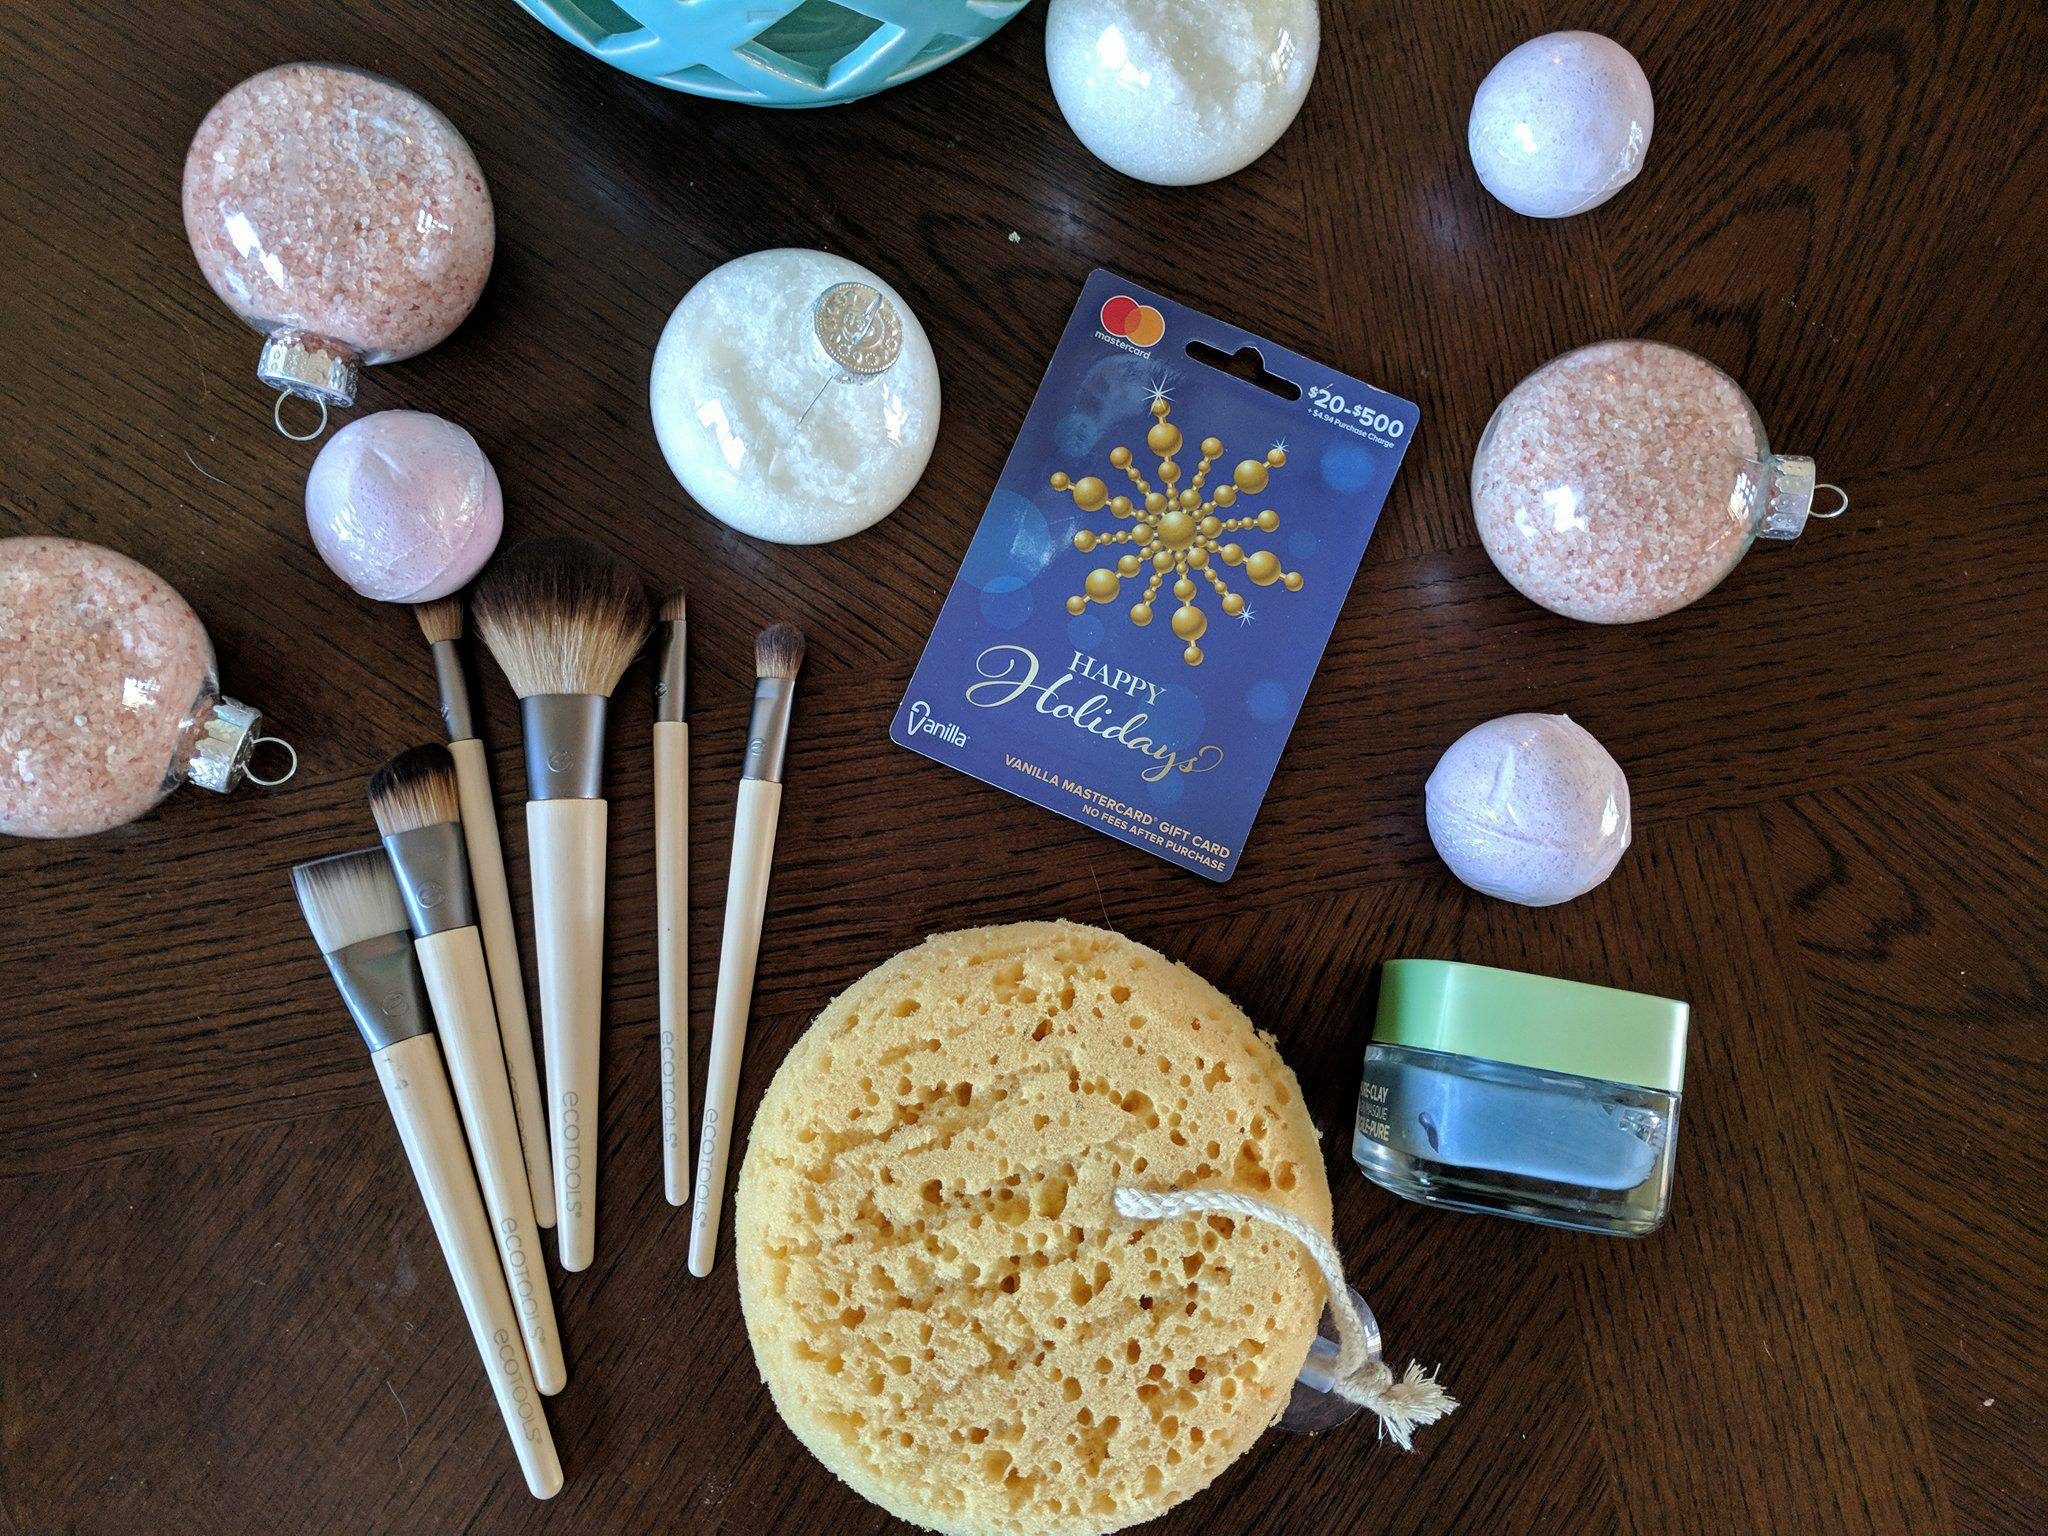 The Bath Salt Ingredients Were Easy To Pick Up In Cosmetic Section And Clear Ornaments New Holiday Hurricane Glasses Are One Of